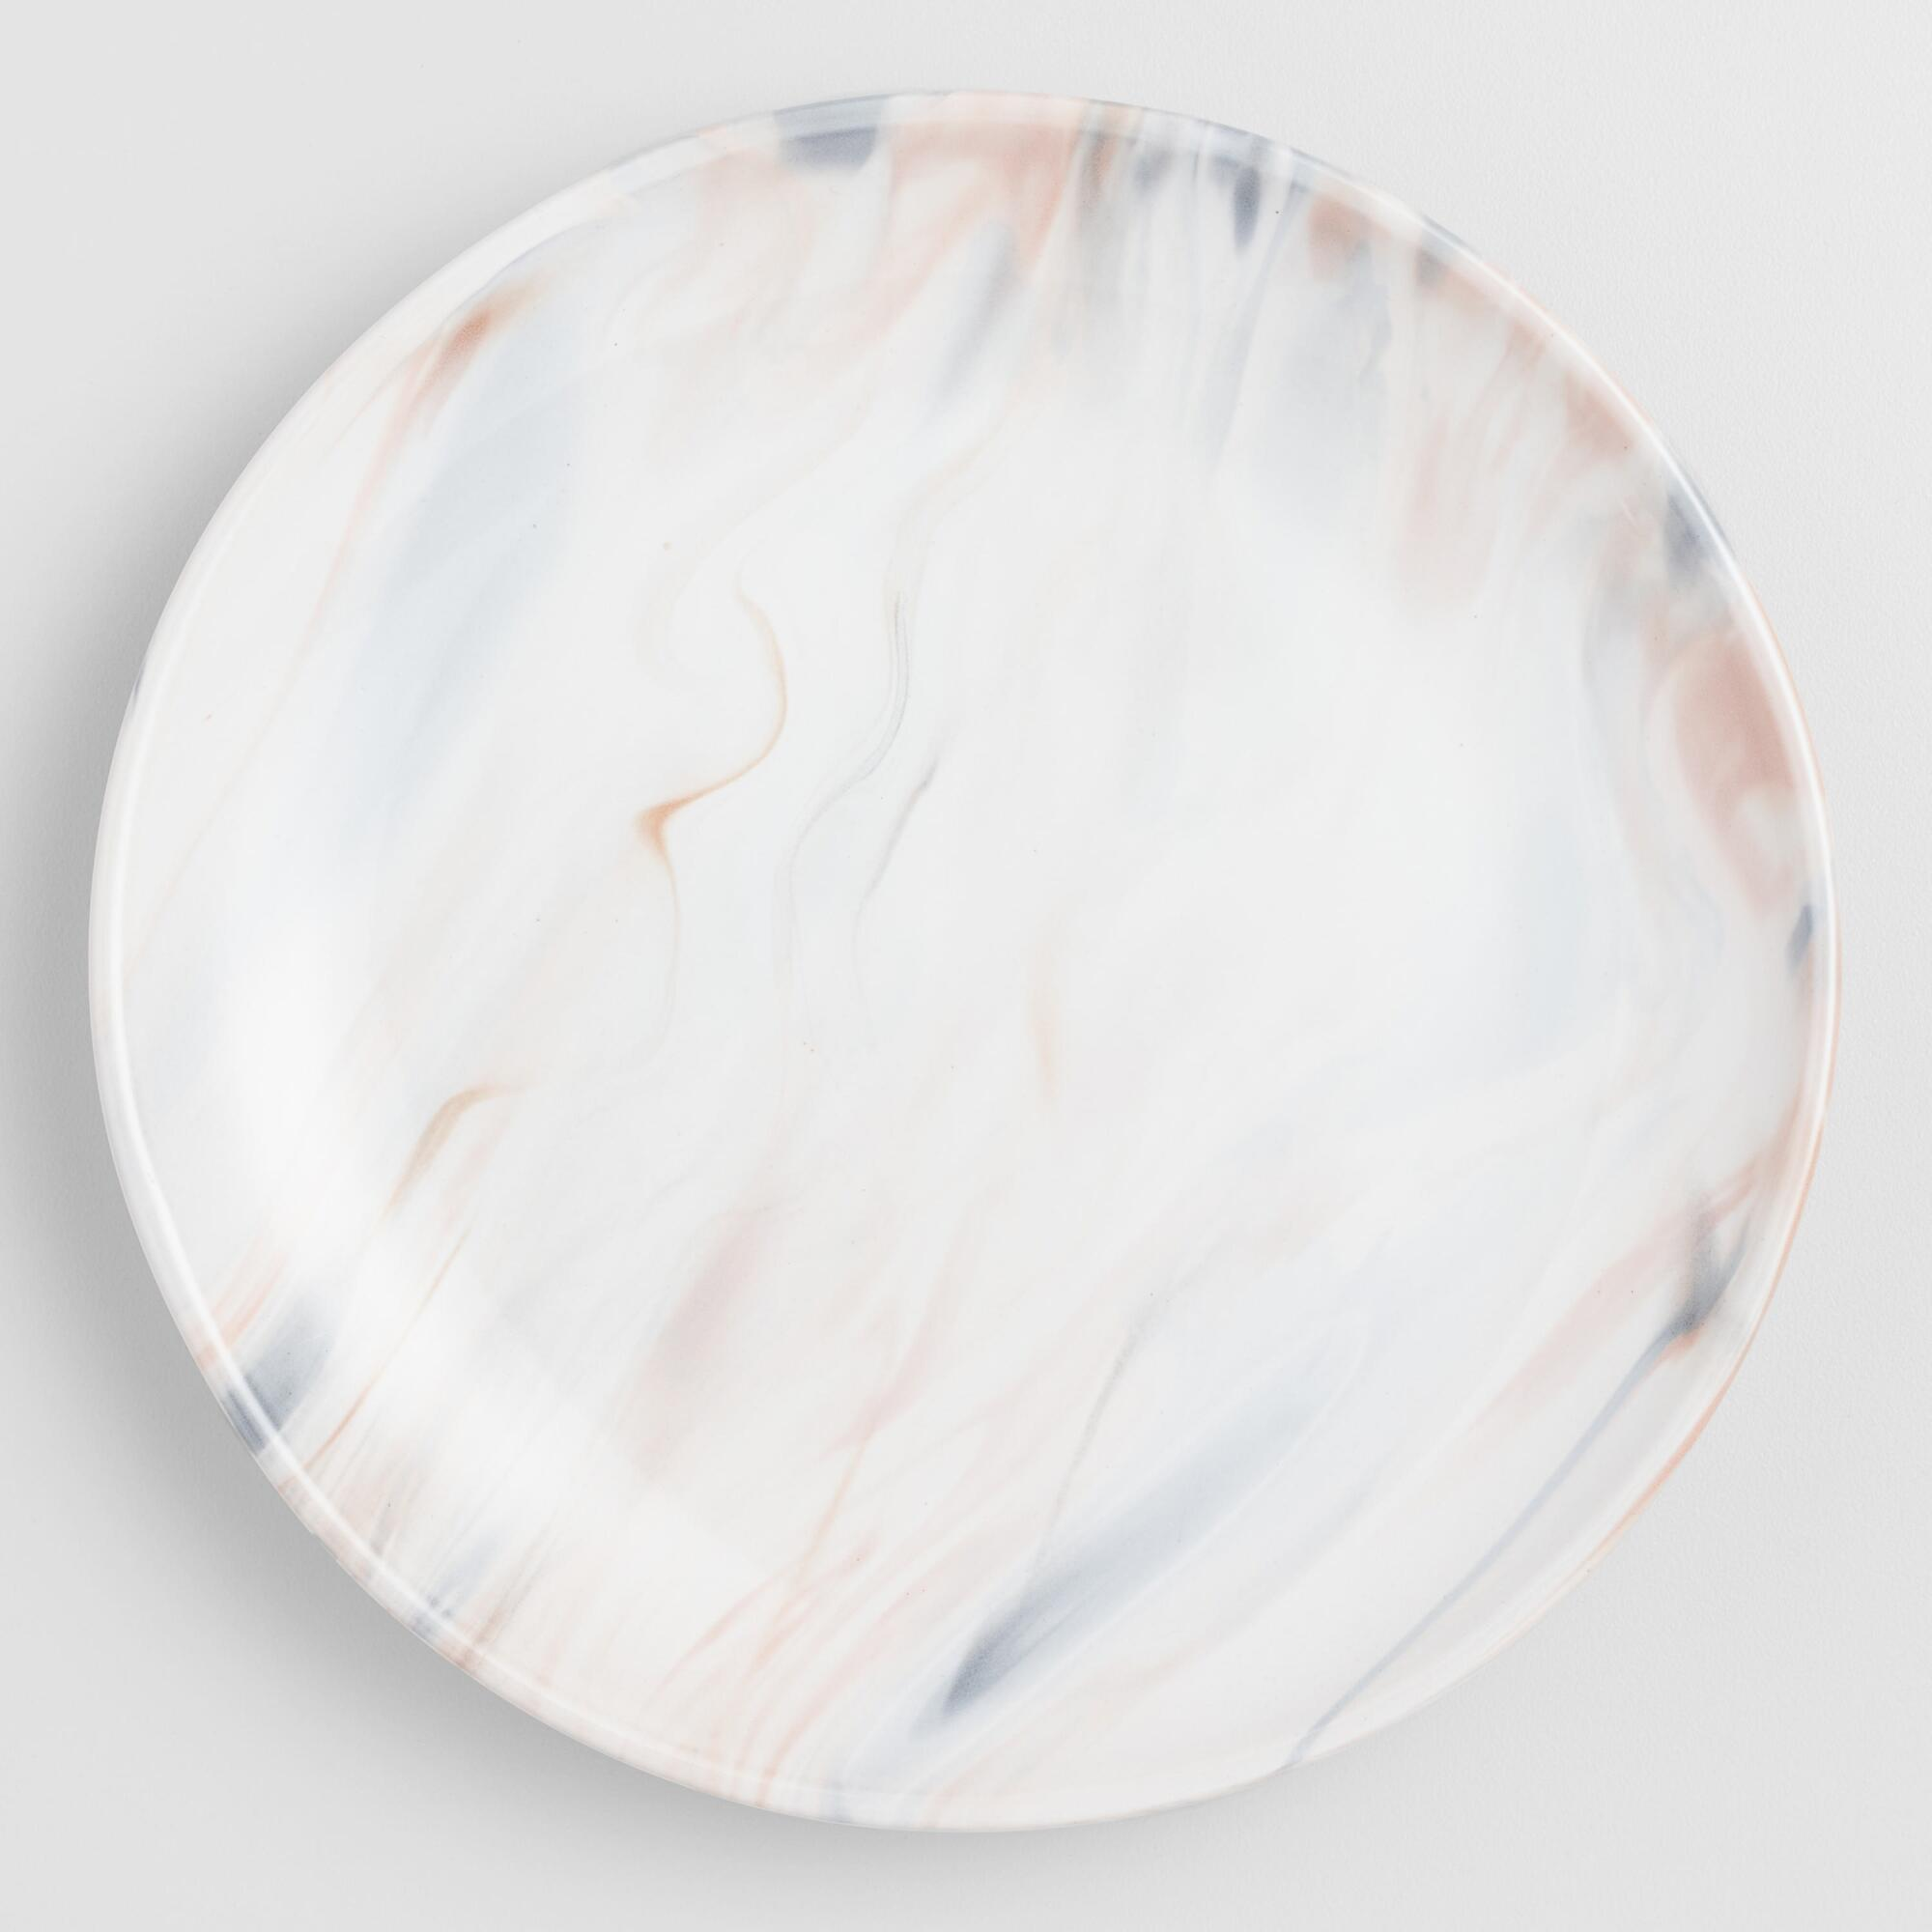 Gray And Tan Marble Salad Plates Set Of 4 by World Market